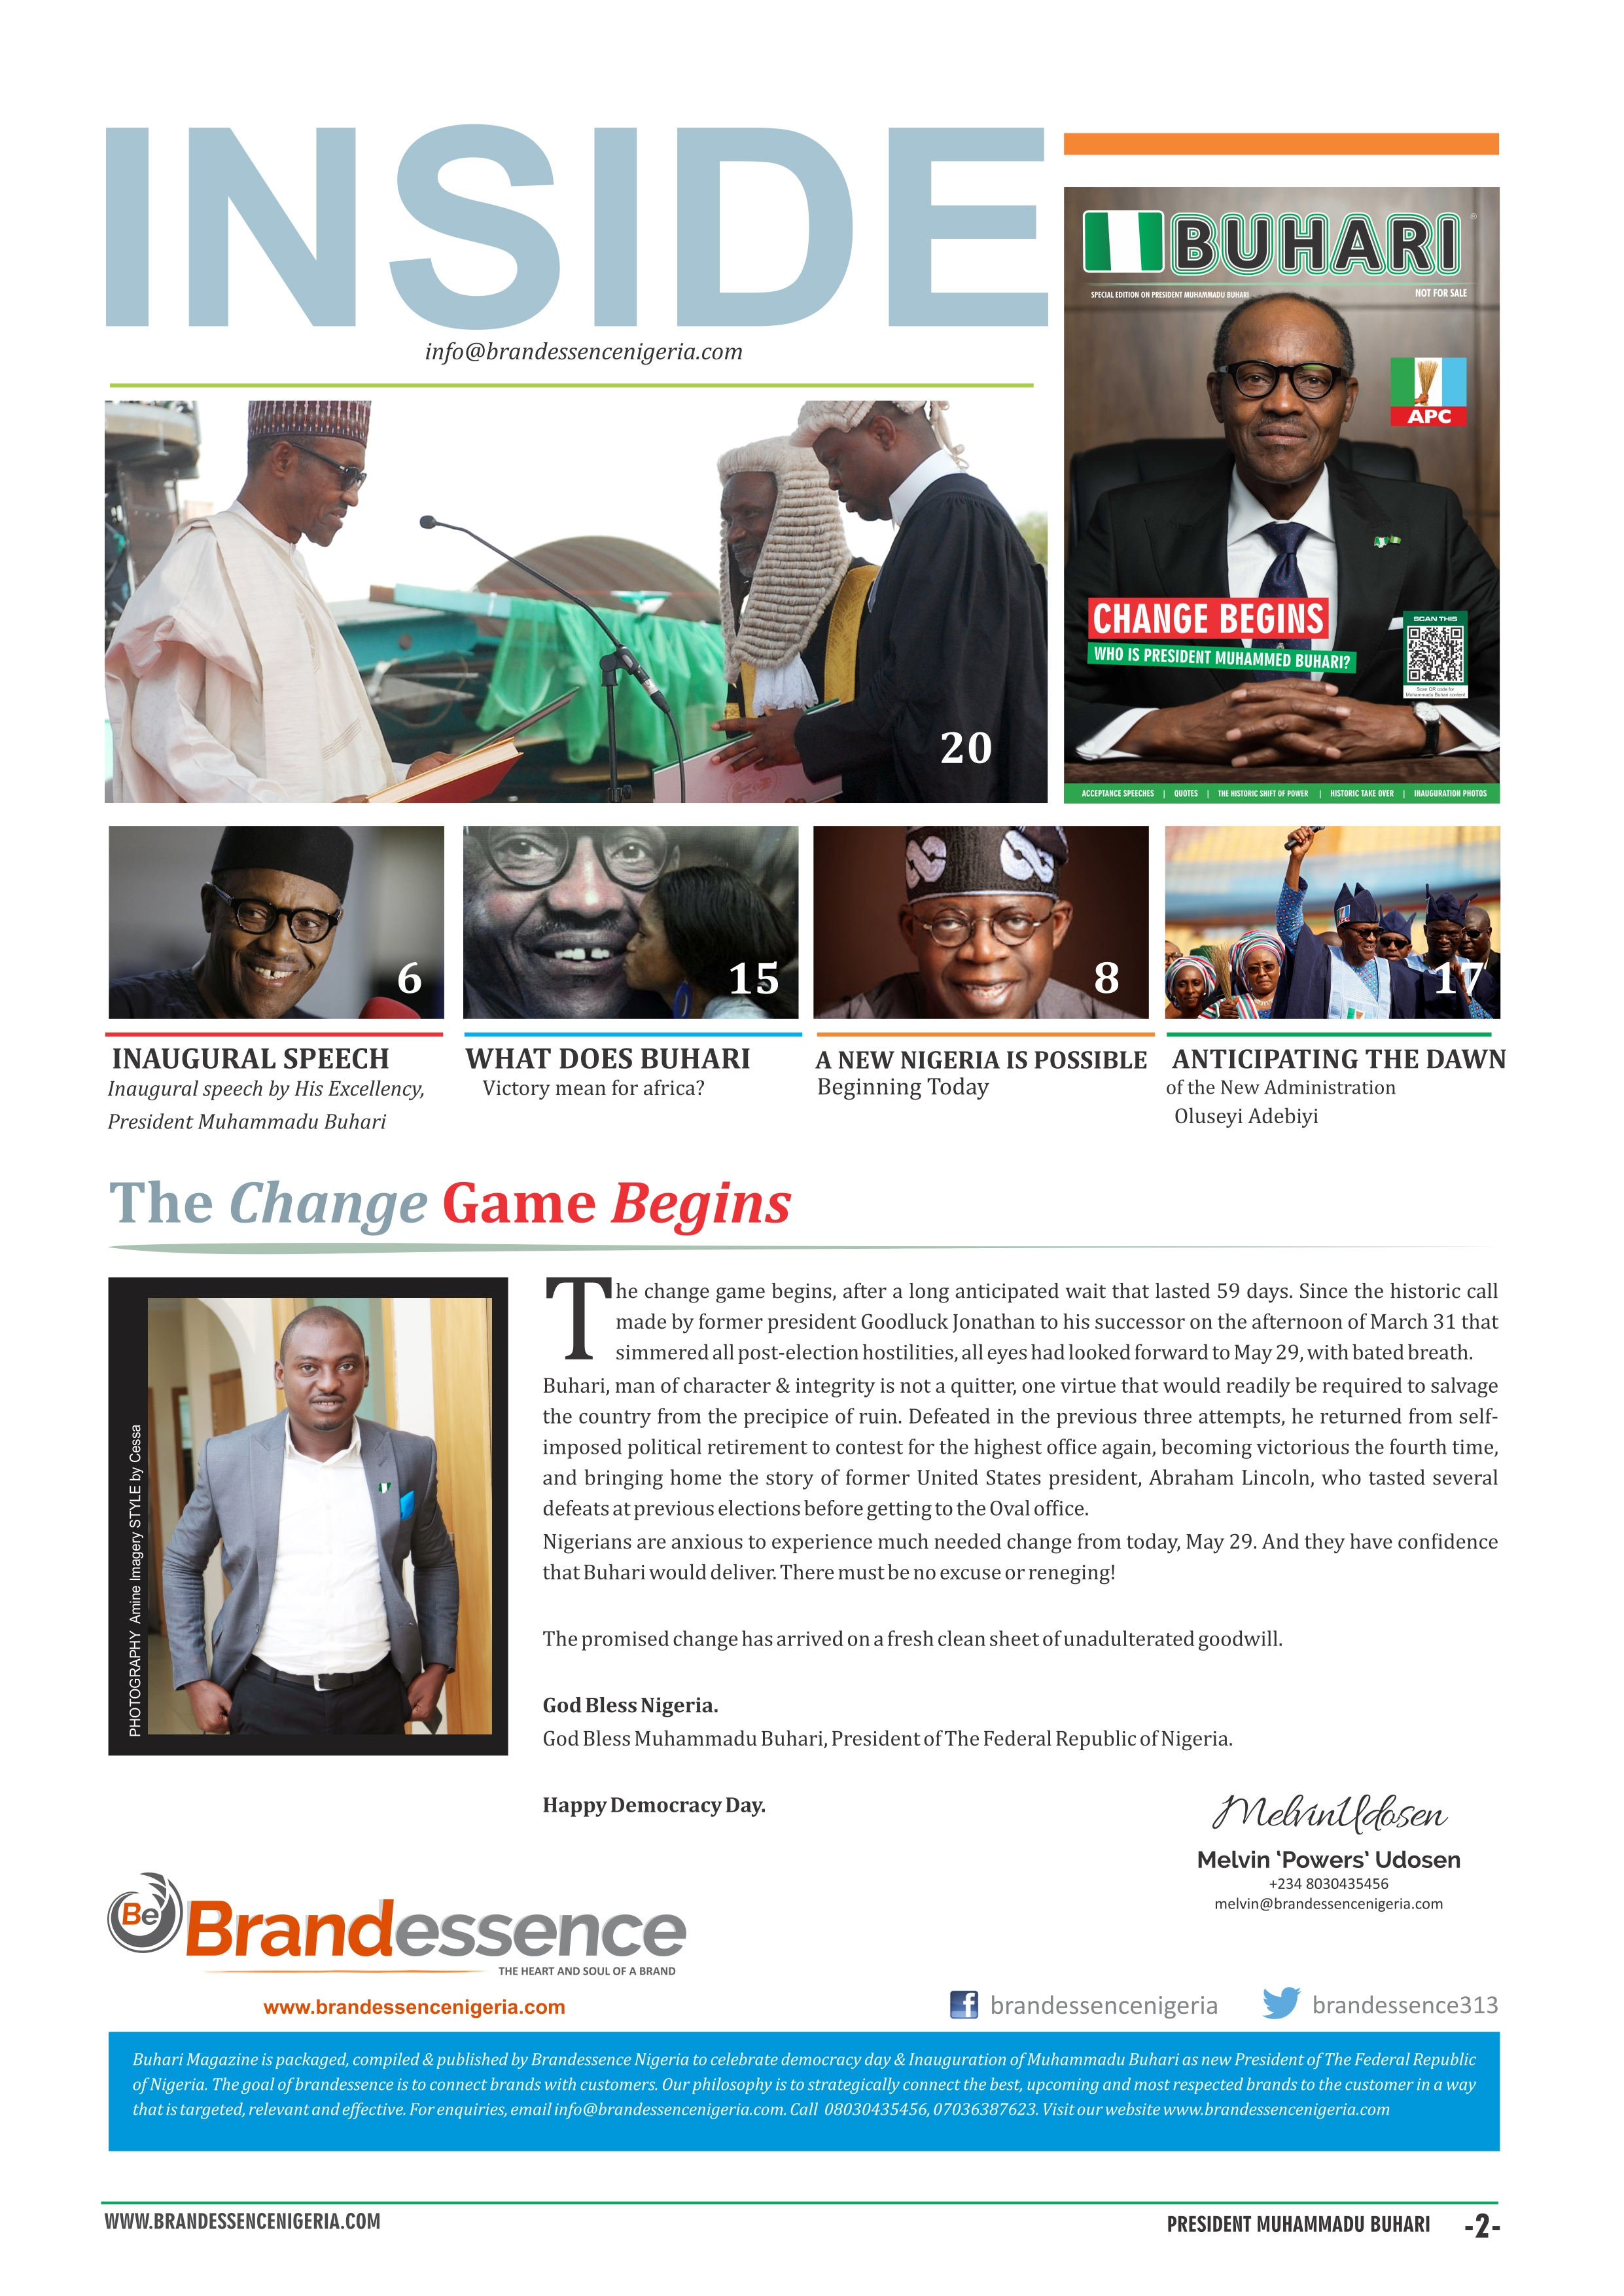 Brandessence Nigeria: Download Free Online Magazine on President